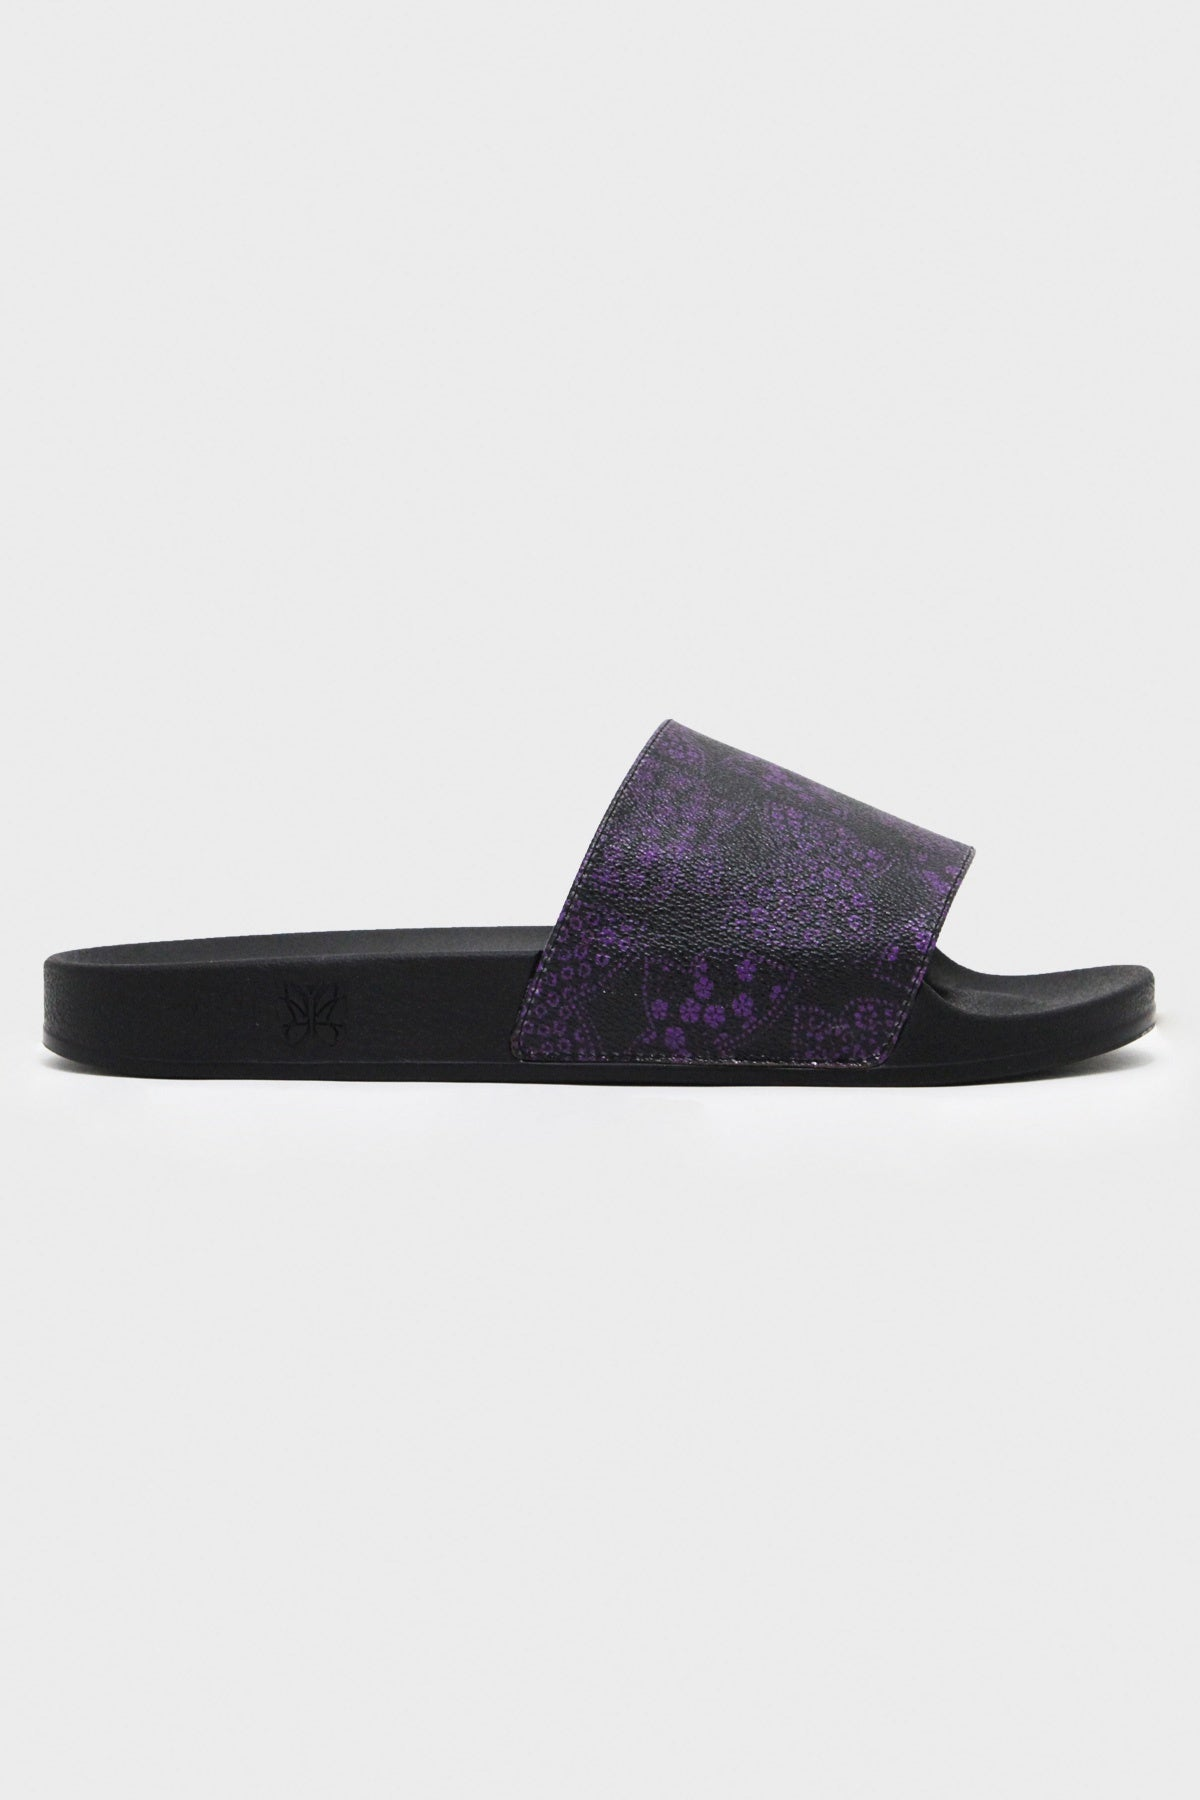 Needles - Shower Sandals Papillon - Black - Canoe Club